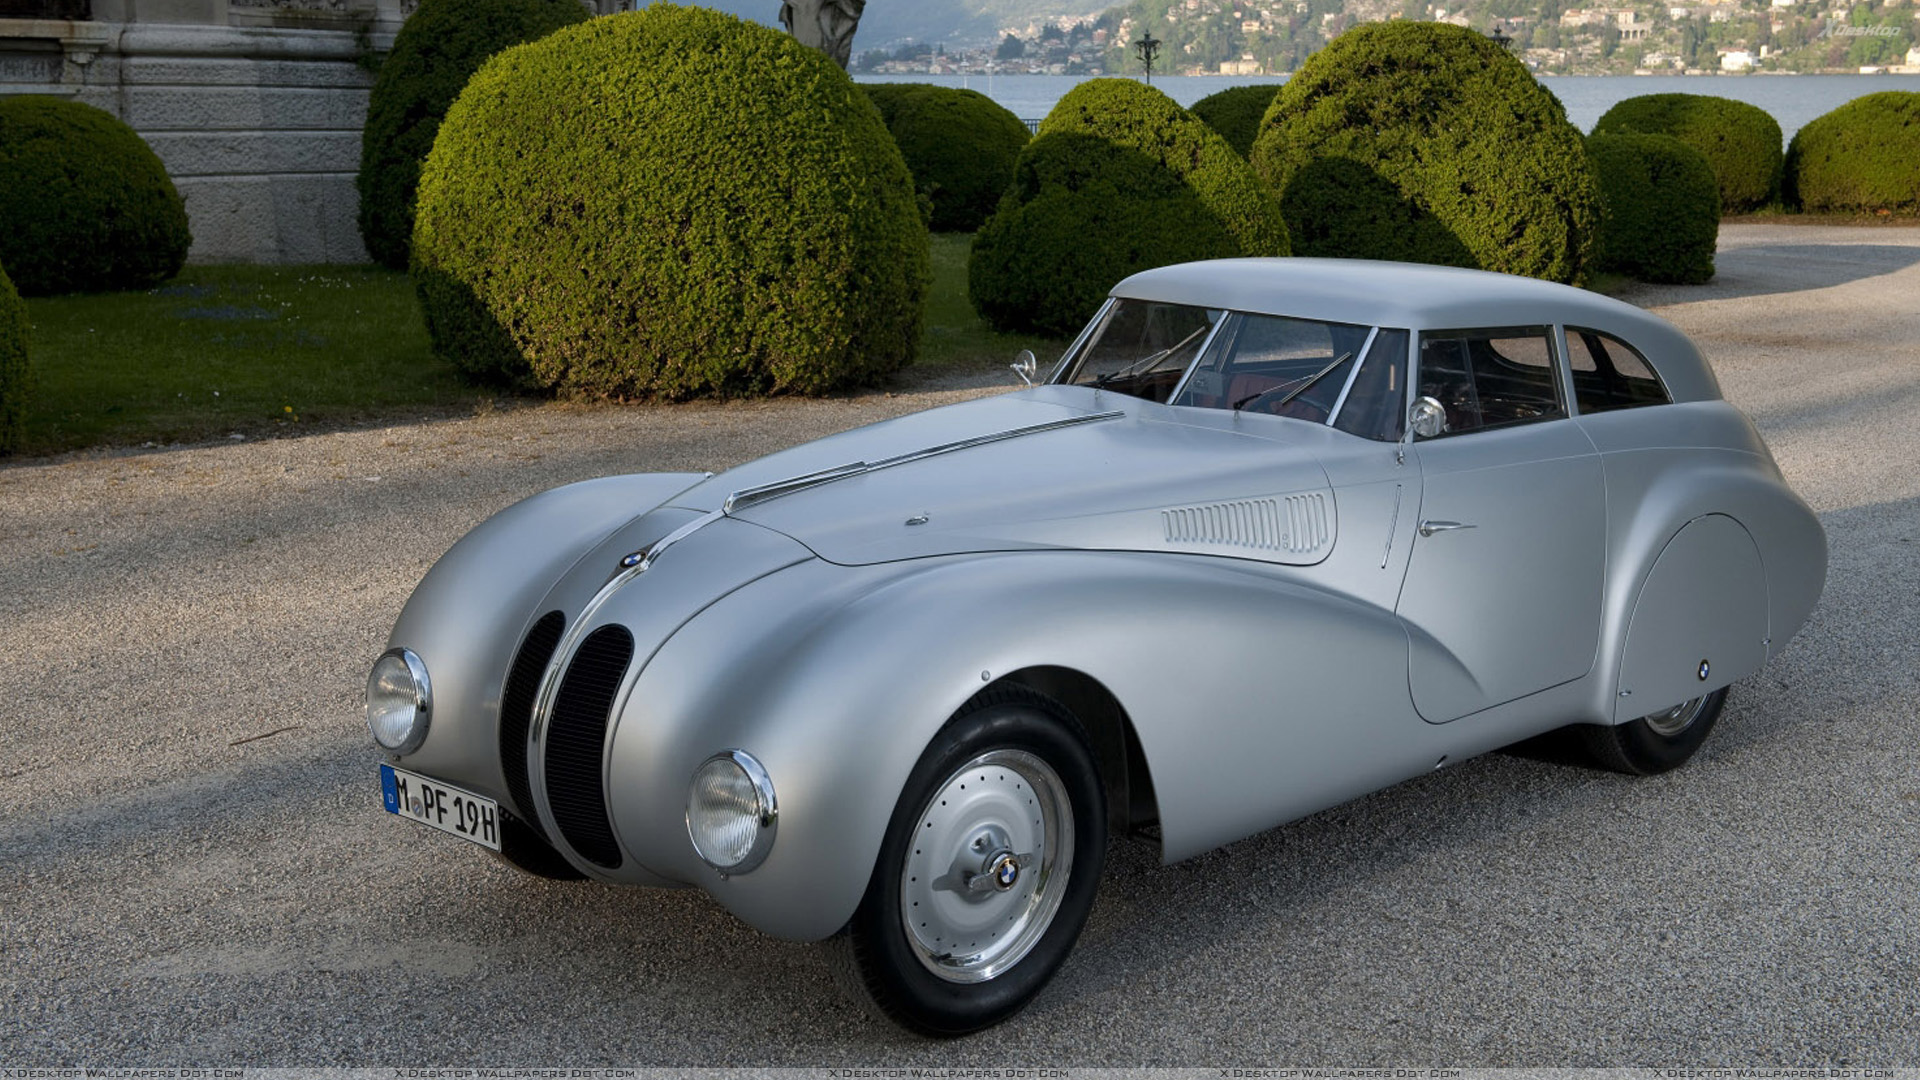 1940 BMW 328 Kamm Coupe In Silver At GoodWood Festival Of Speed ...